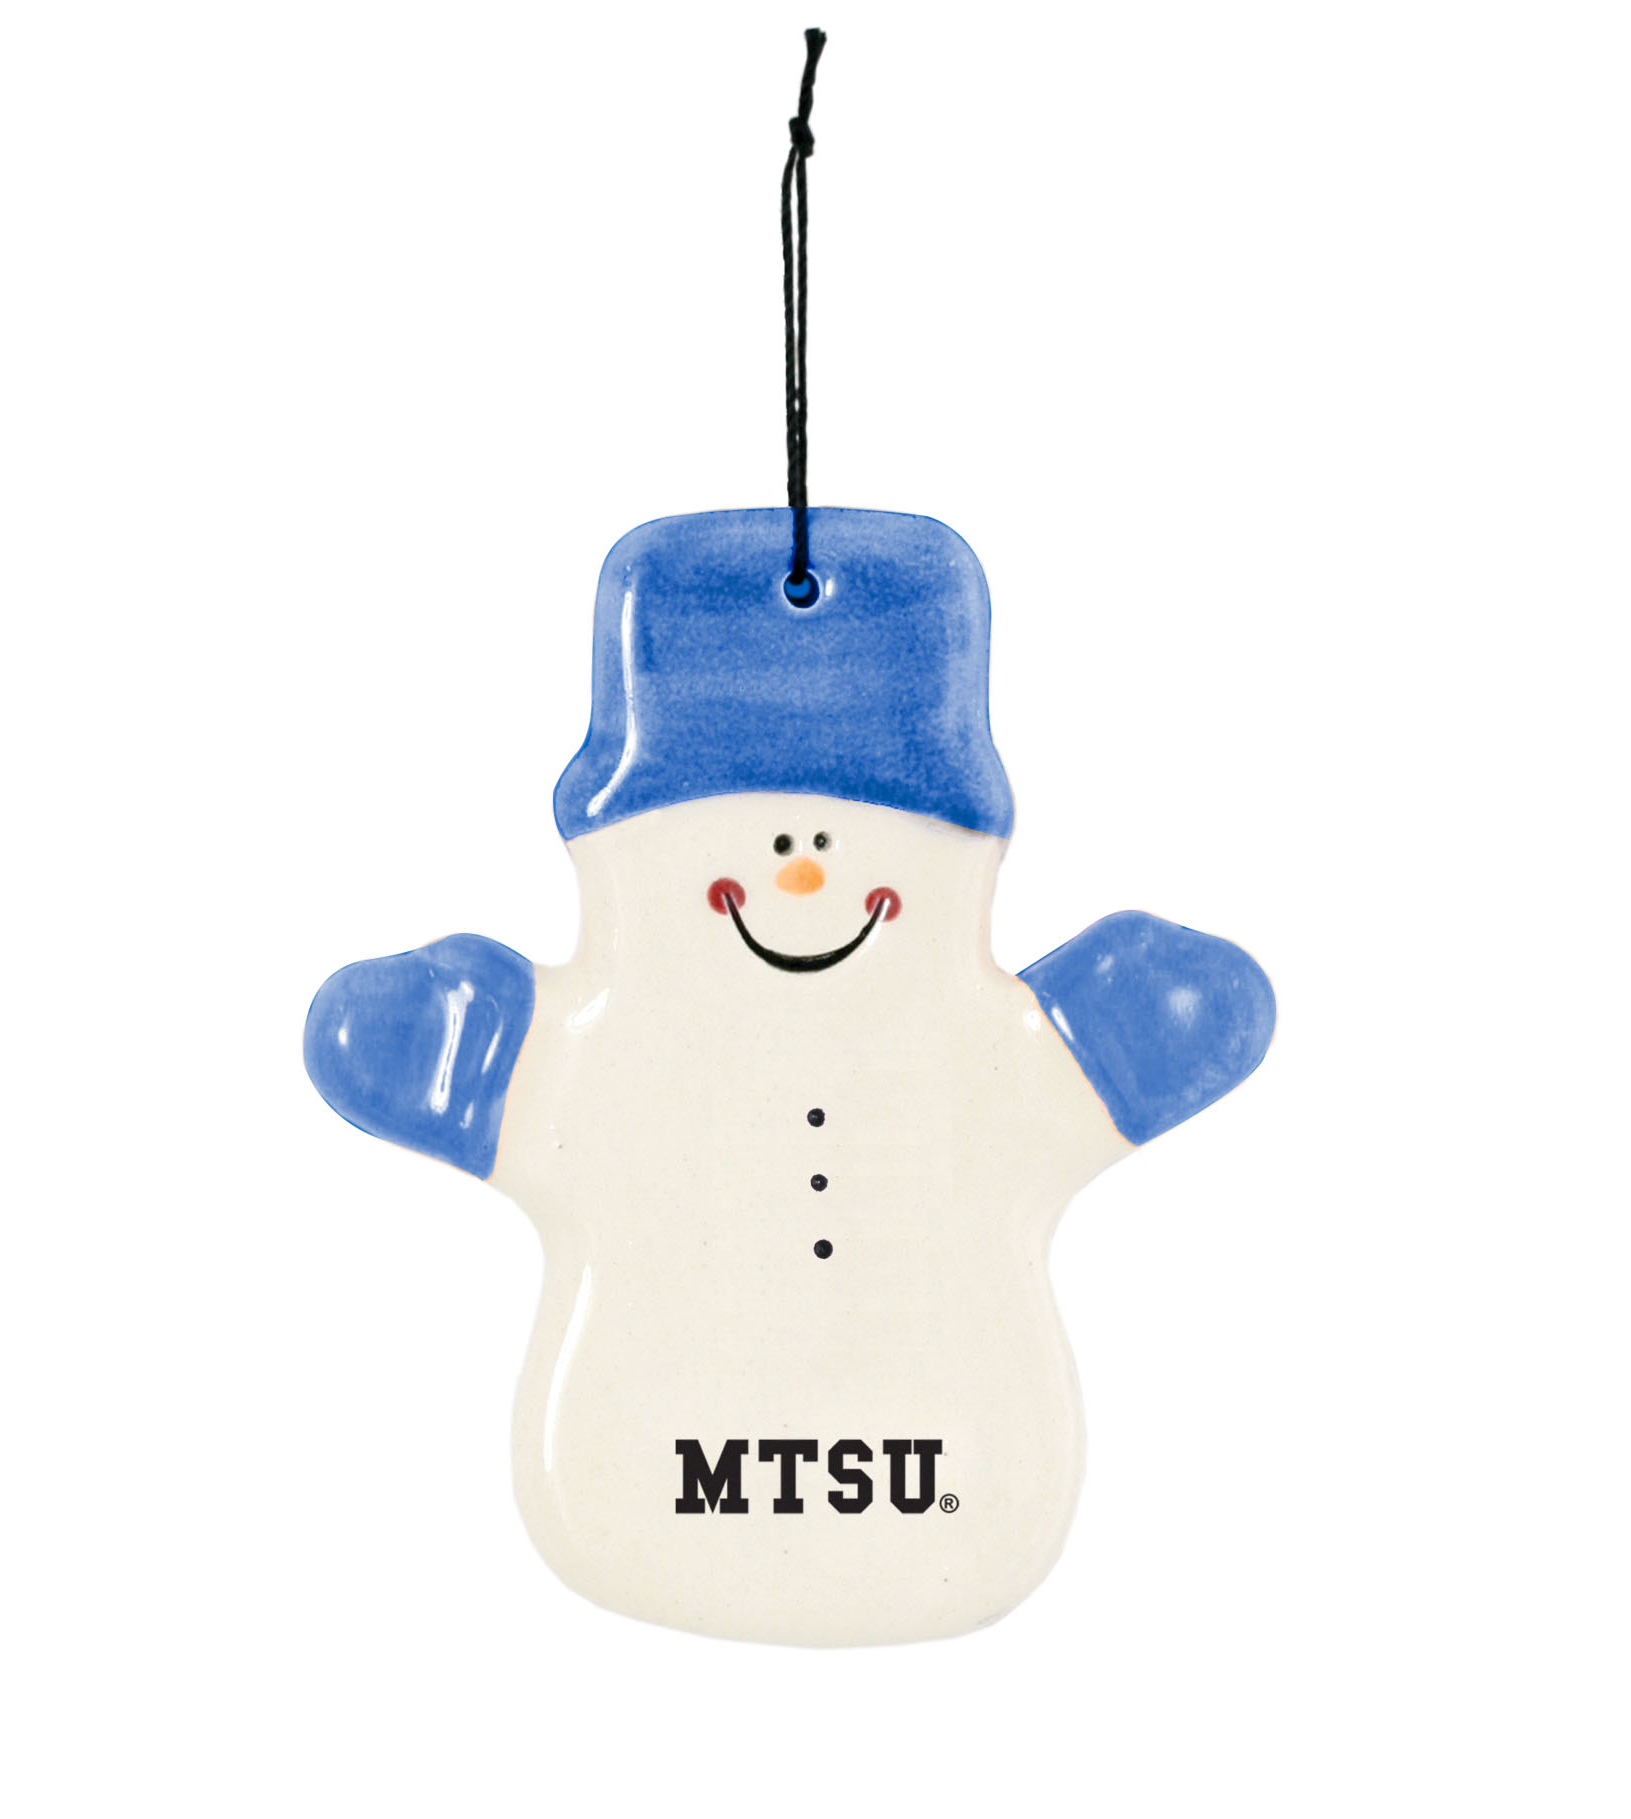 MTSU Claude Snowman Ornament